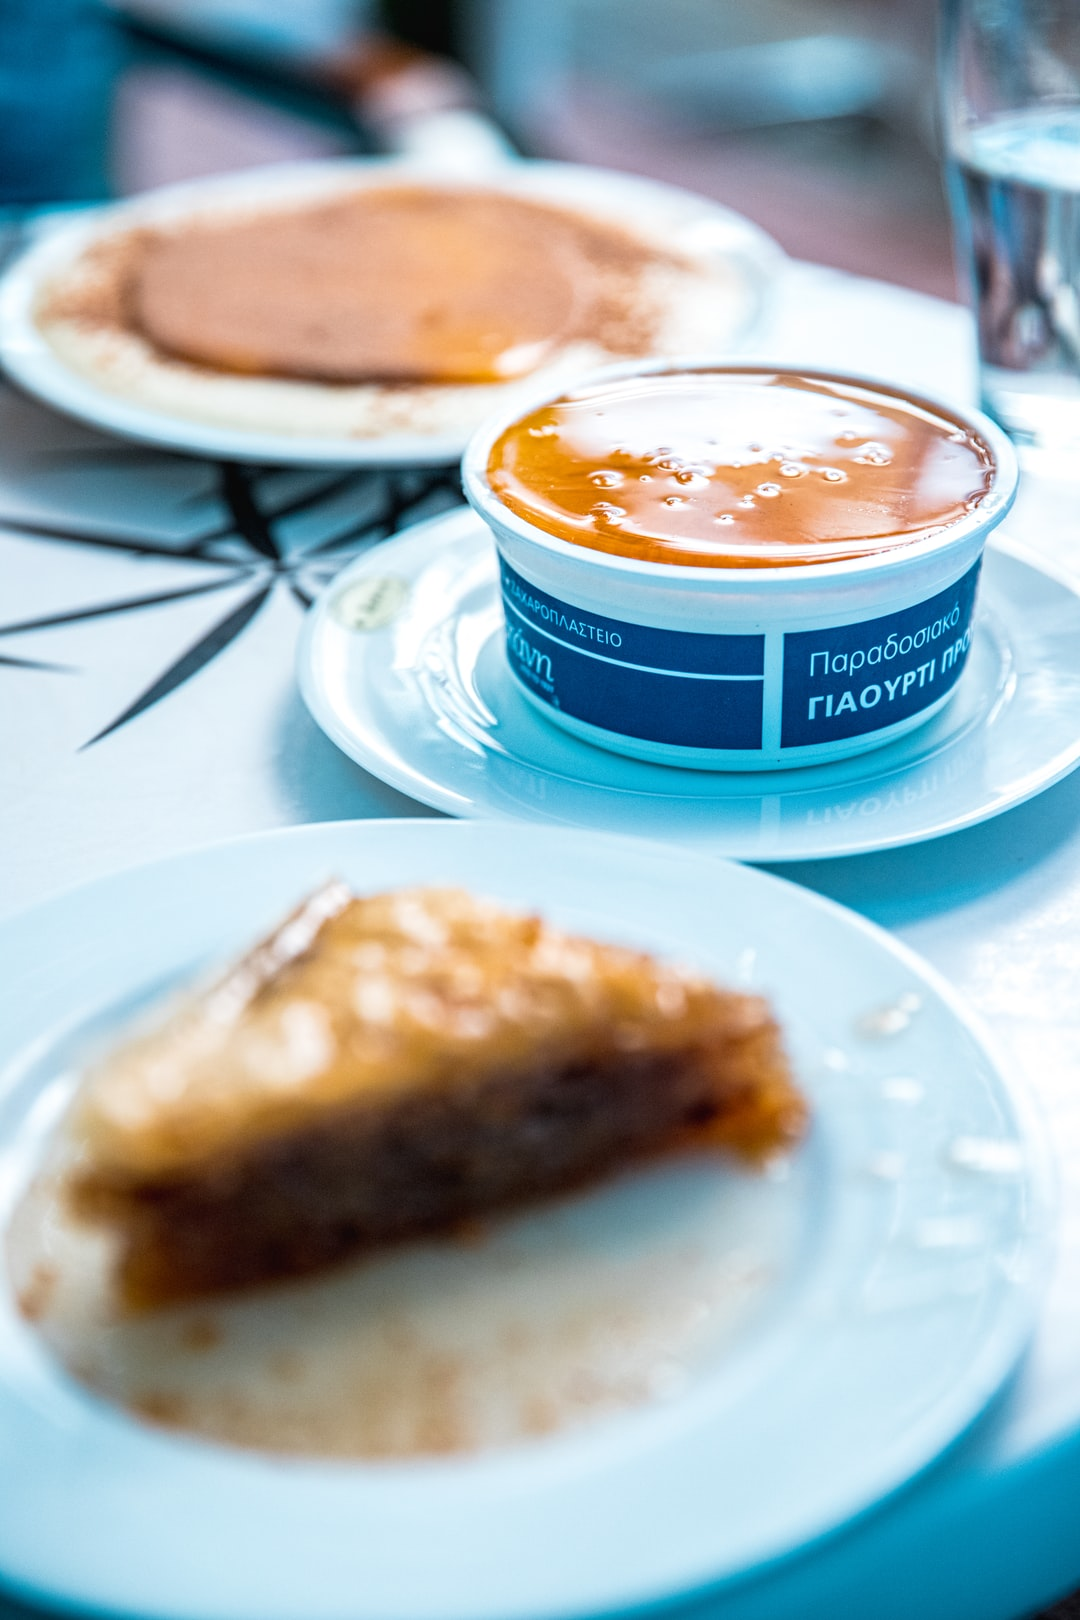 One of the best desserts I've ever had at a local coffee shop in Athens, Greece that has been open since the 1950's. Family owned. A traditional goat yogurt container with a thick layer of local made Greek honey on top and a side of fresh, local Greek Baklava just cause'.  Shot & Edited By @VisualsByRoyalZ